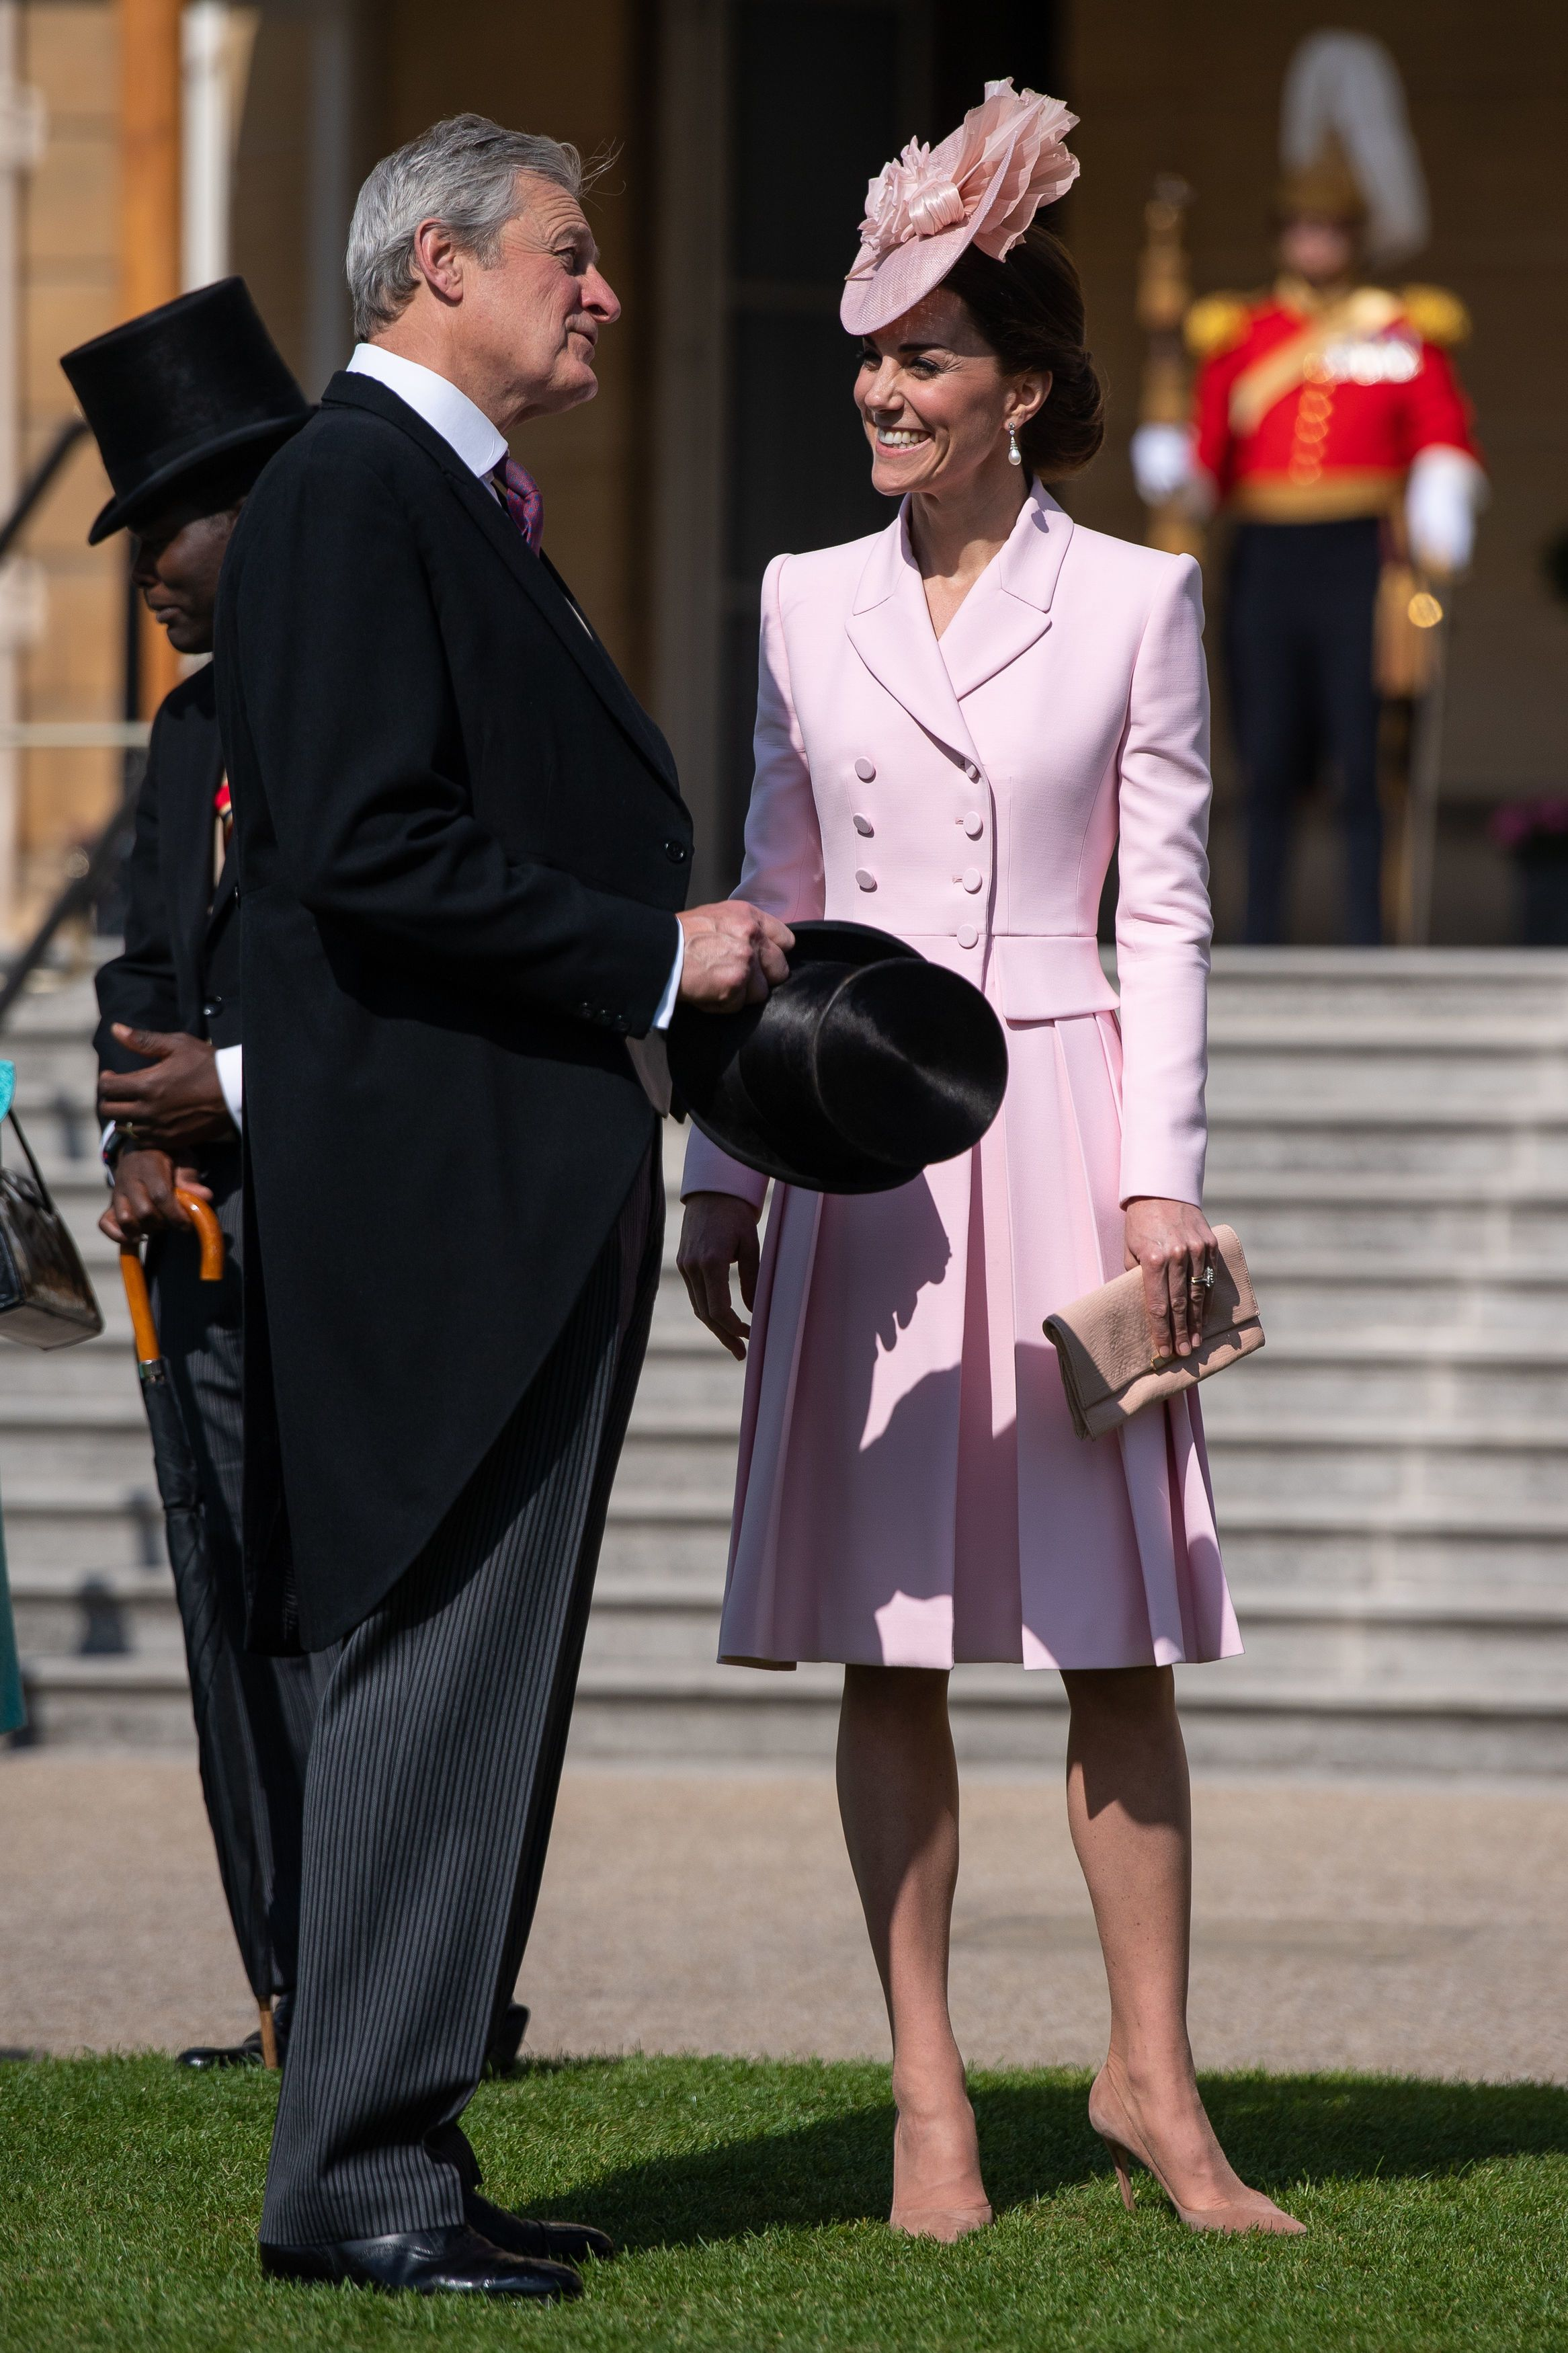 kate middleton attending the Royal Garden Party at Buckingham Palace